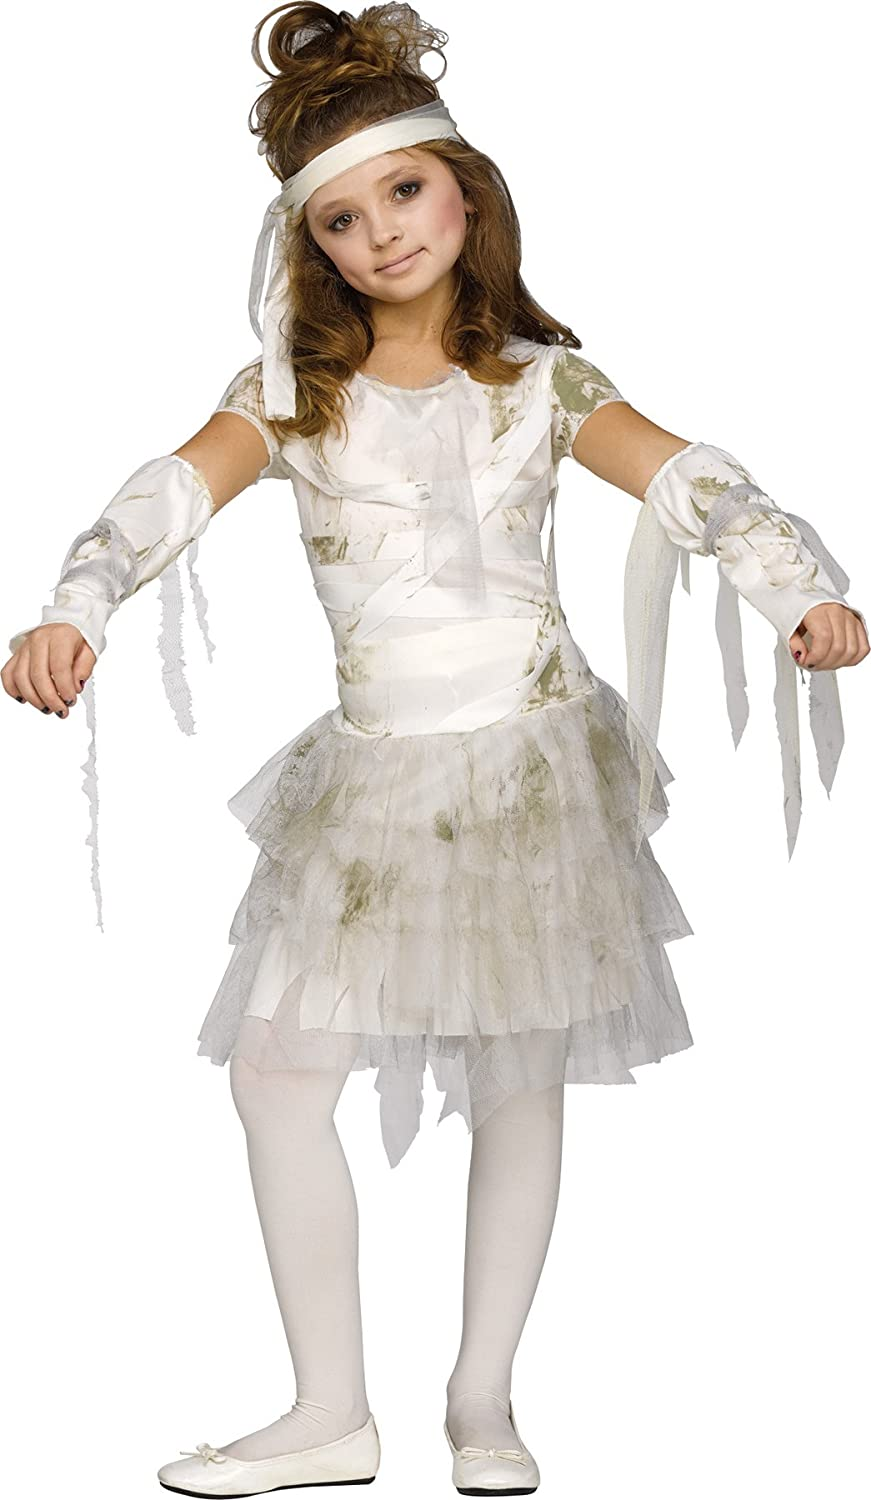 Childrens Butterfly Fancy Dress Costume Girls Halloween Outfit Kids Childs M